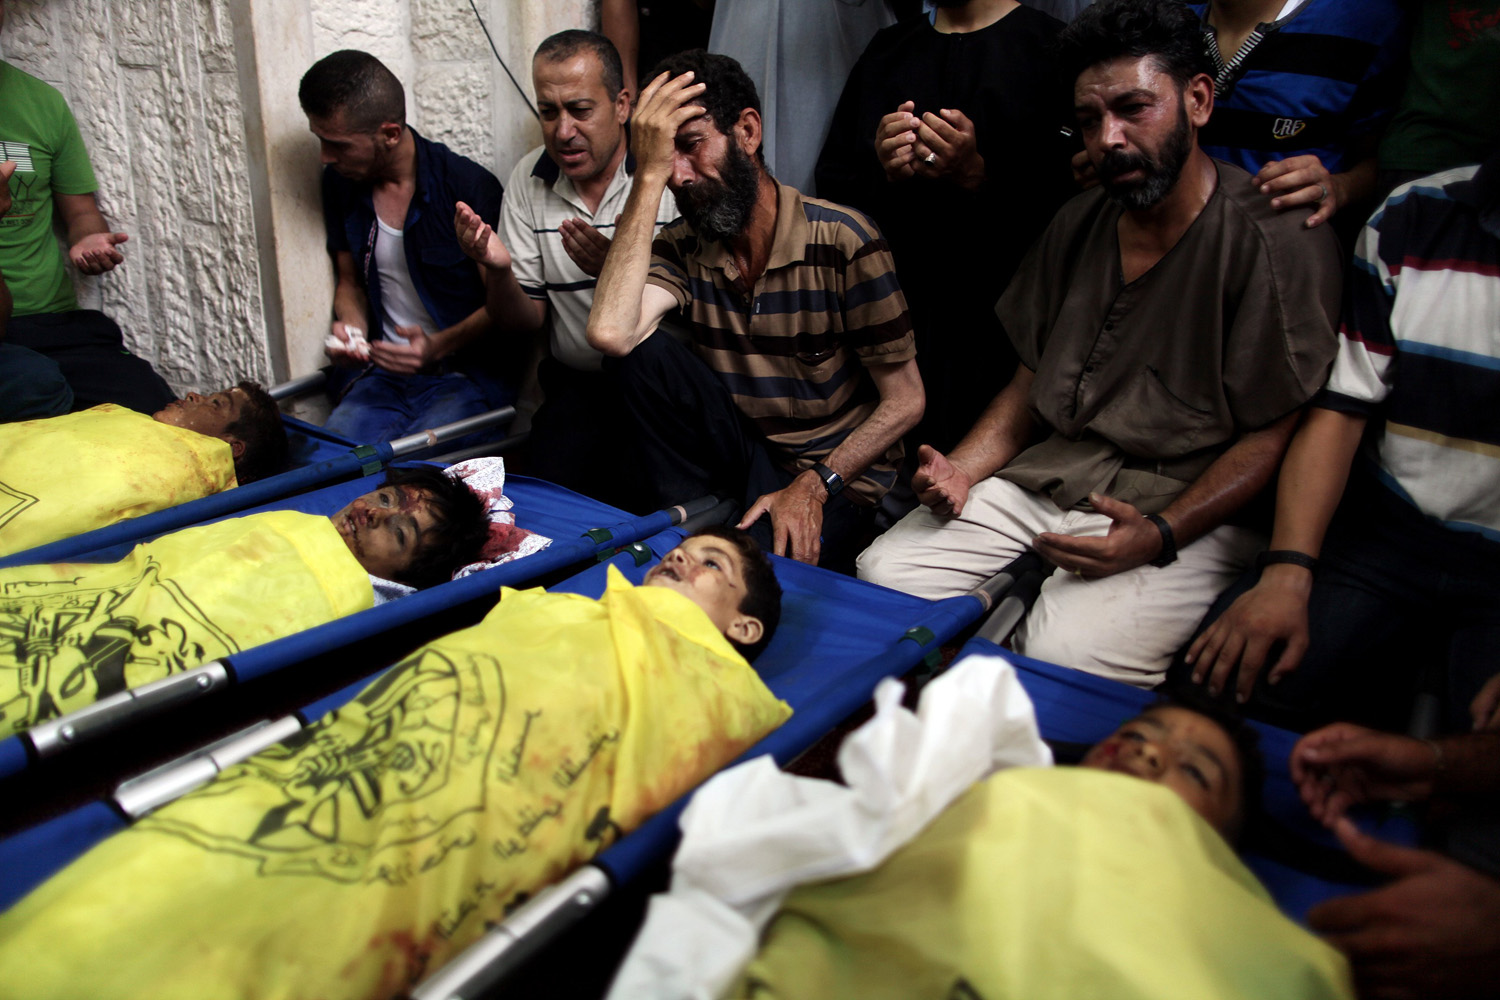 Jul. 16, 2014. Palestinians mourn over the body of boys from the Baker family, whom medics said was killed with three other children from the same family by a shell fired by an Israeli naval gunboat, in Gaza city.